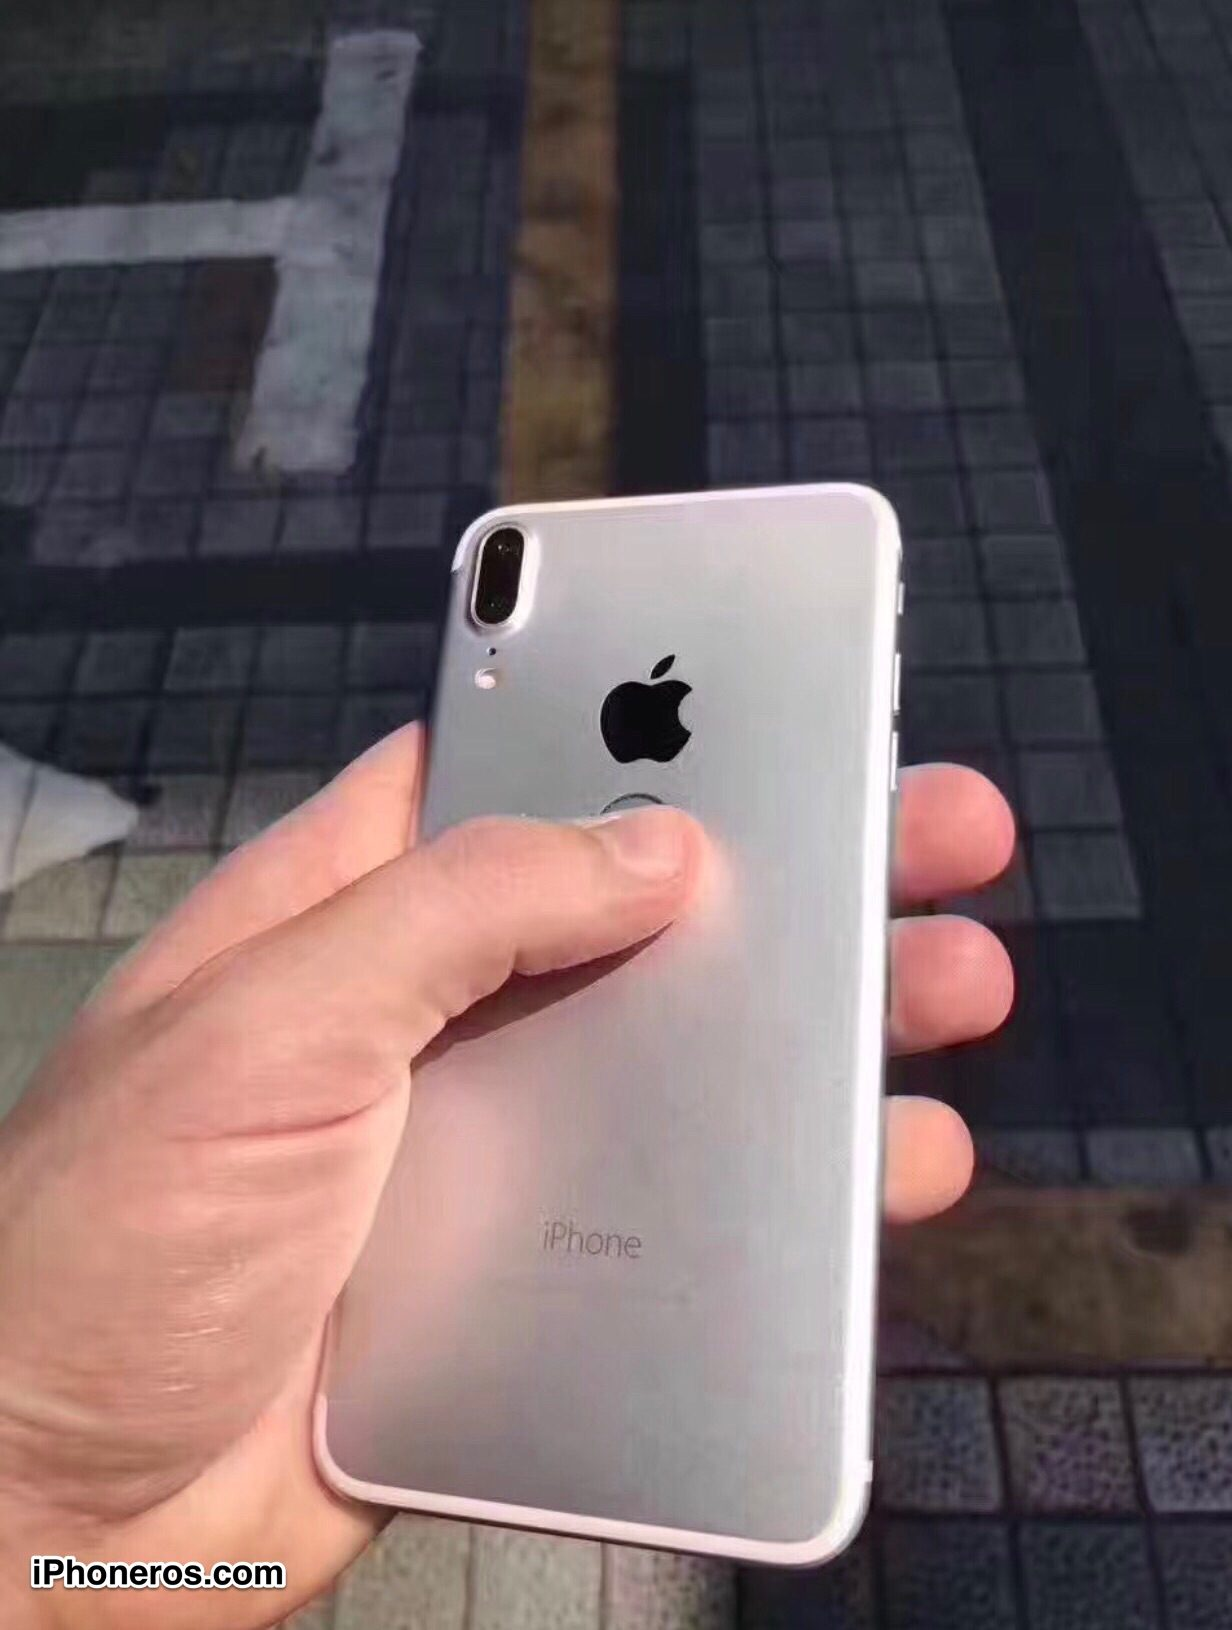 iPhone 8 Leaks